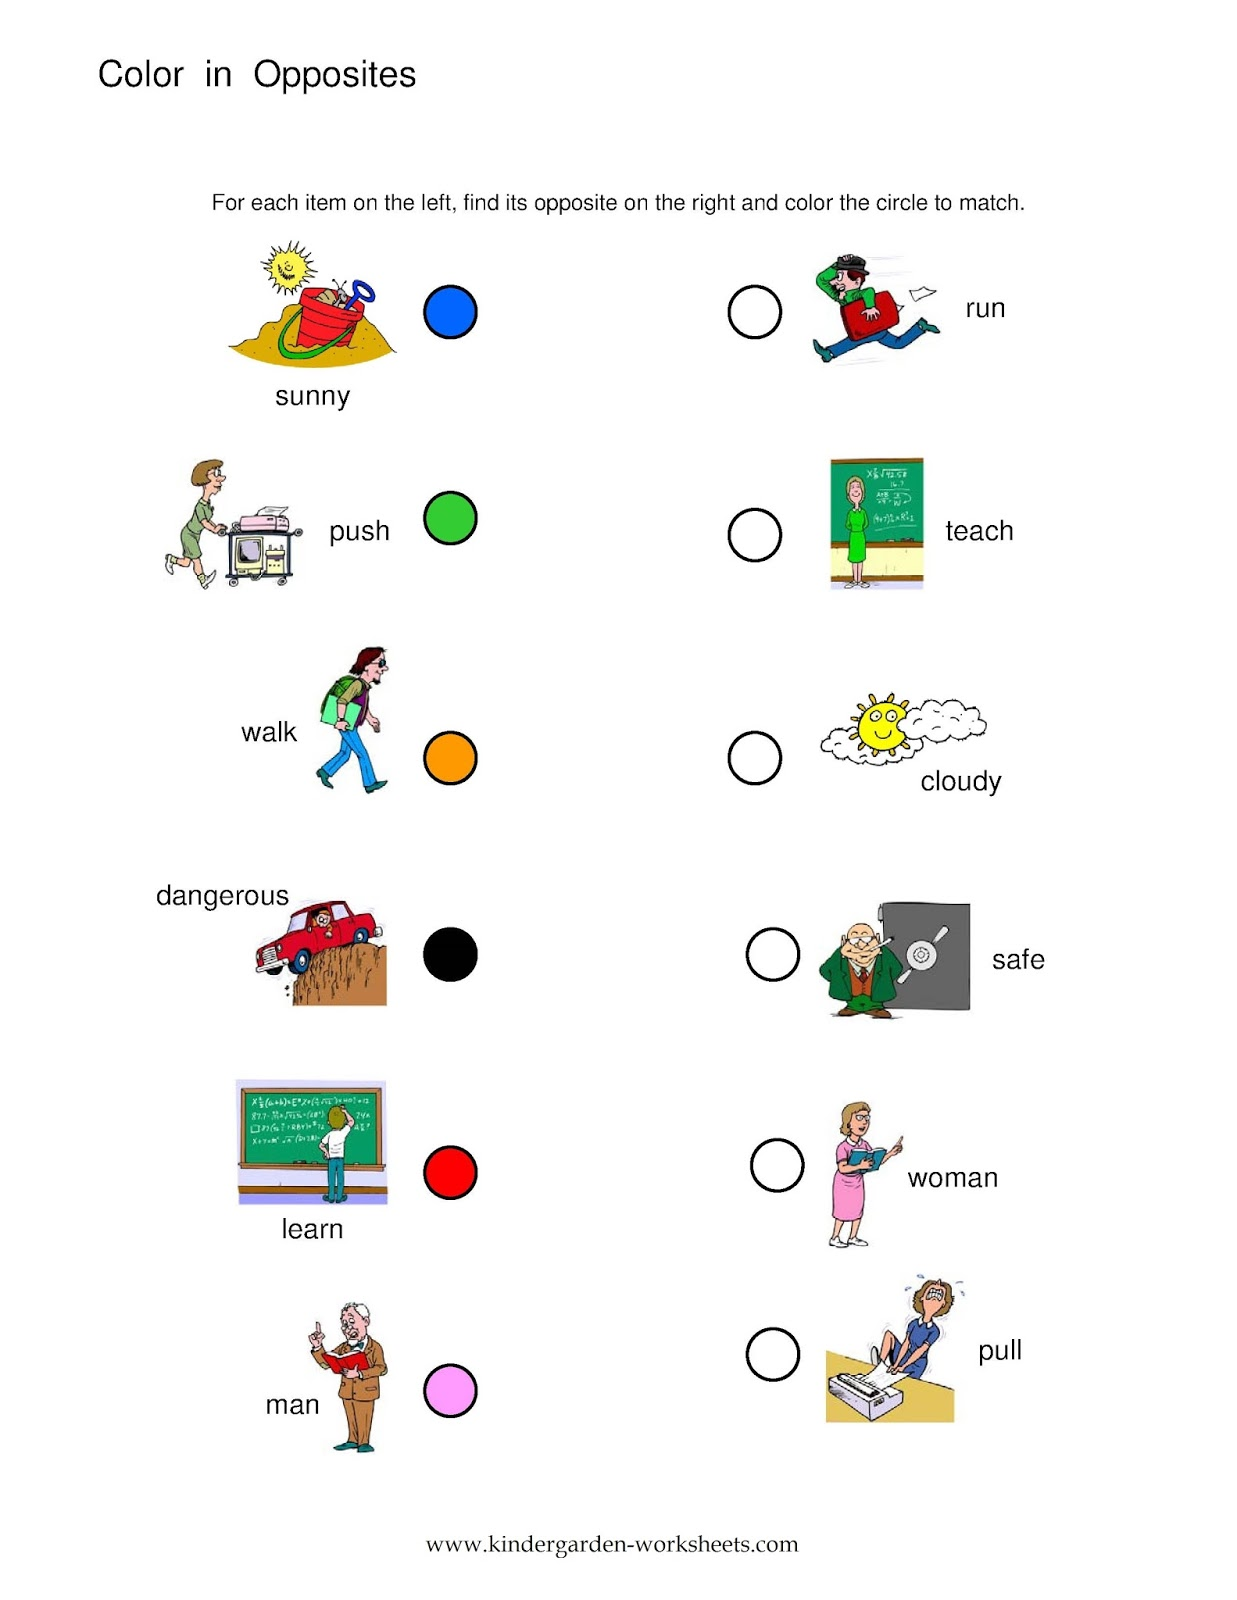 Kindergarten Worksheets Kindergarten Worksheets Opposite Words – Opposite Words Worksheets for Kindergarten